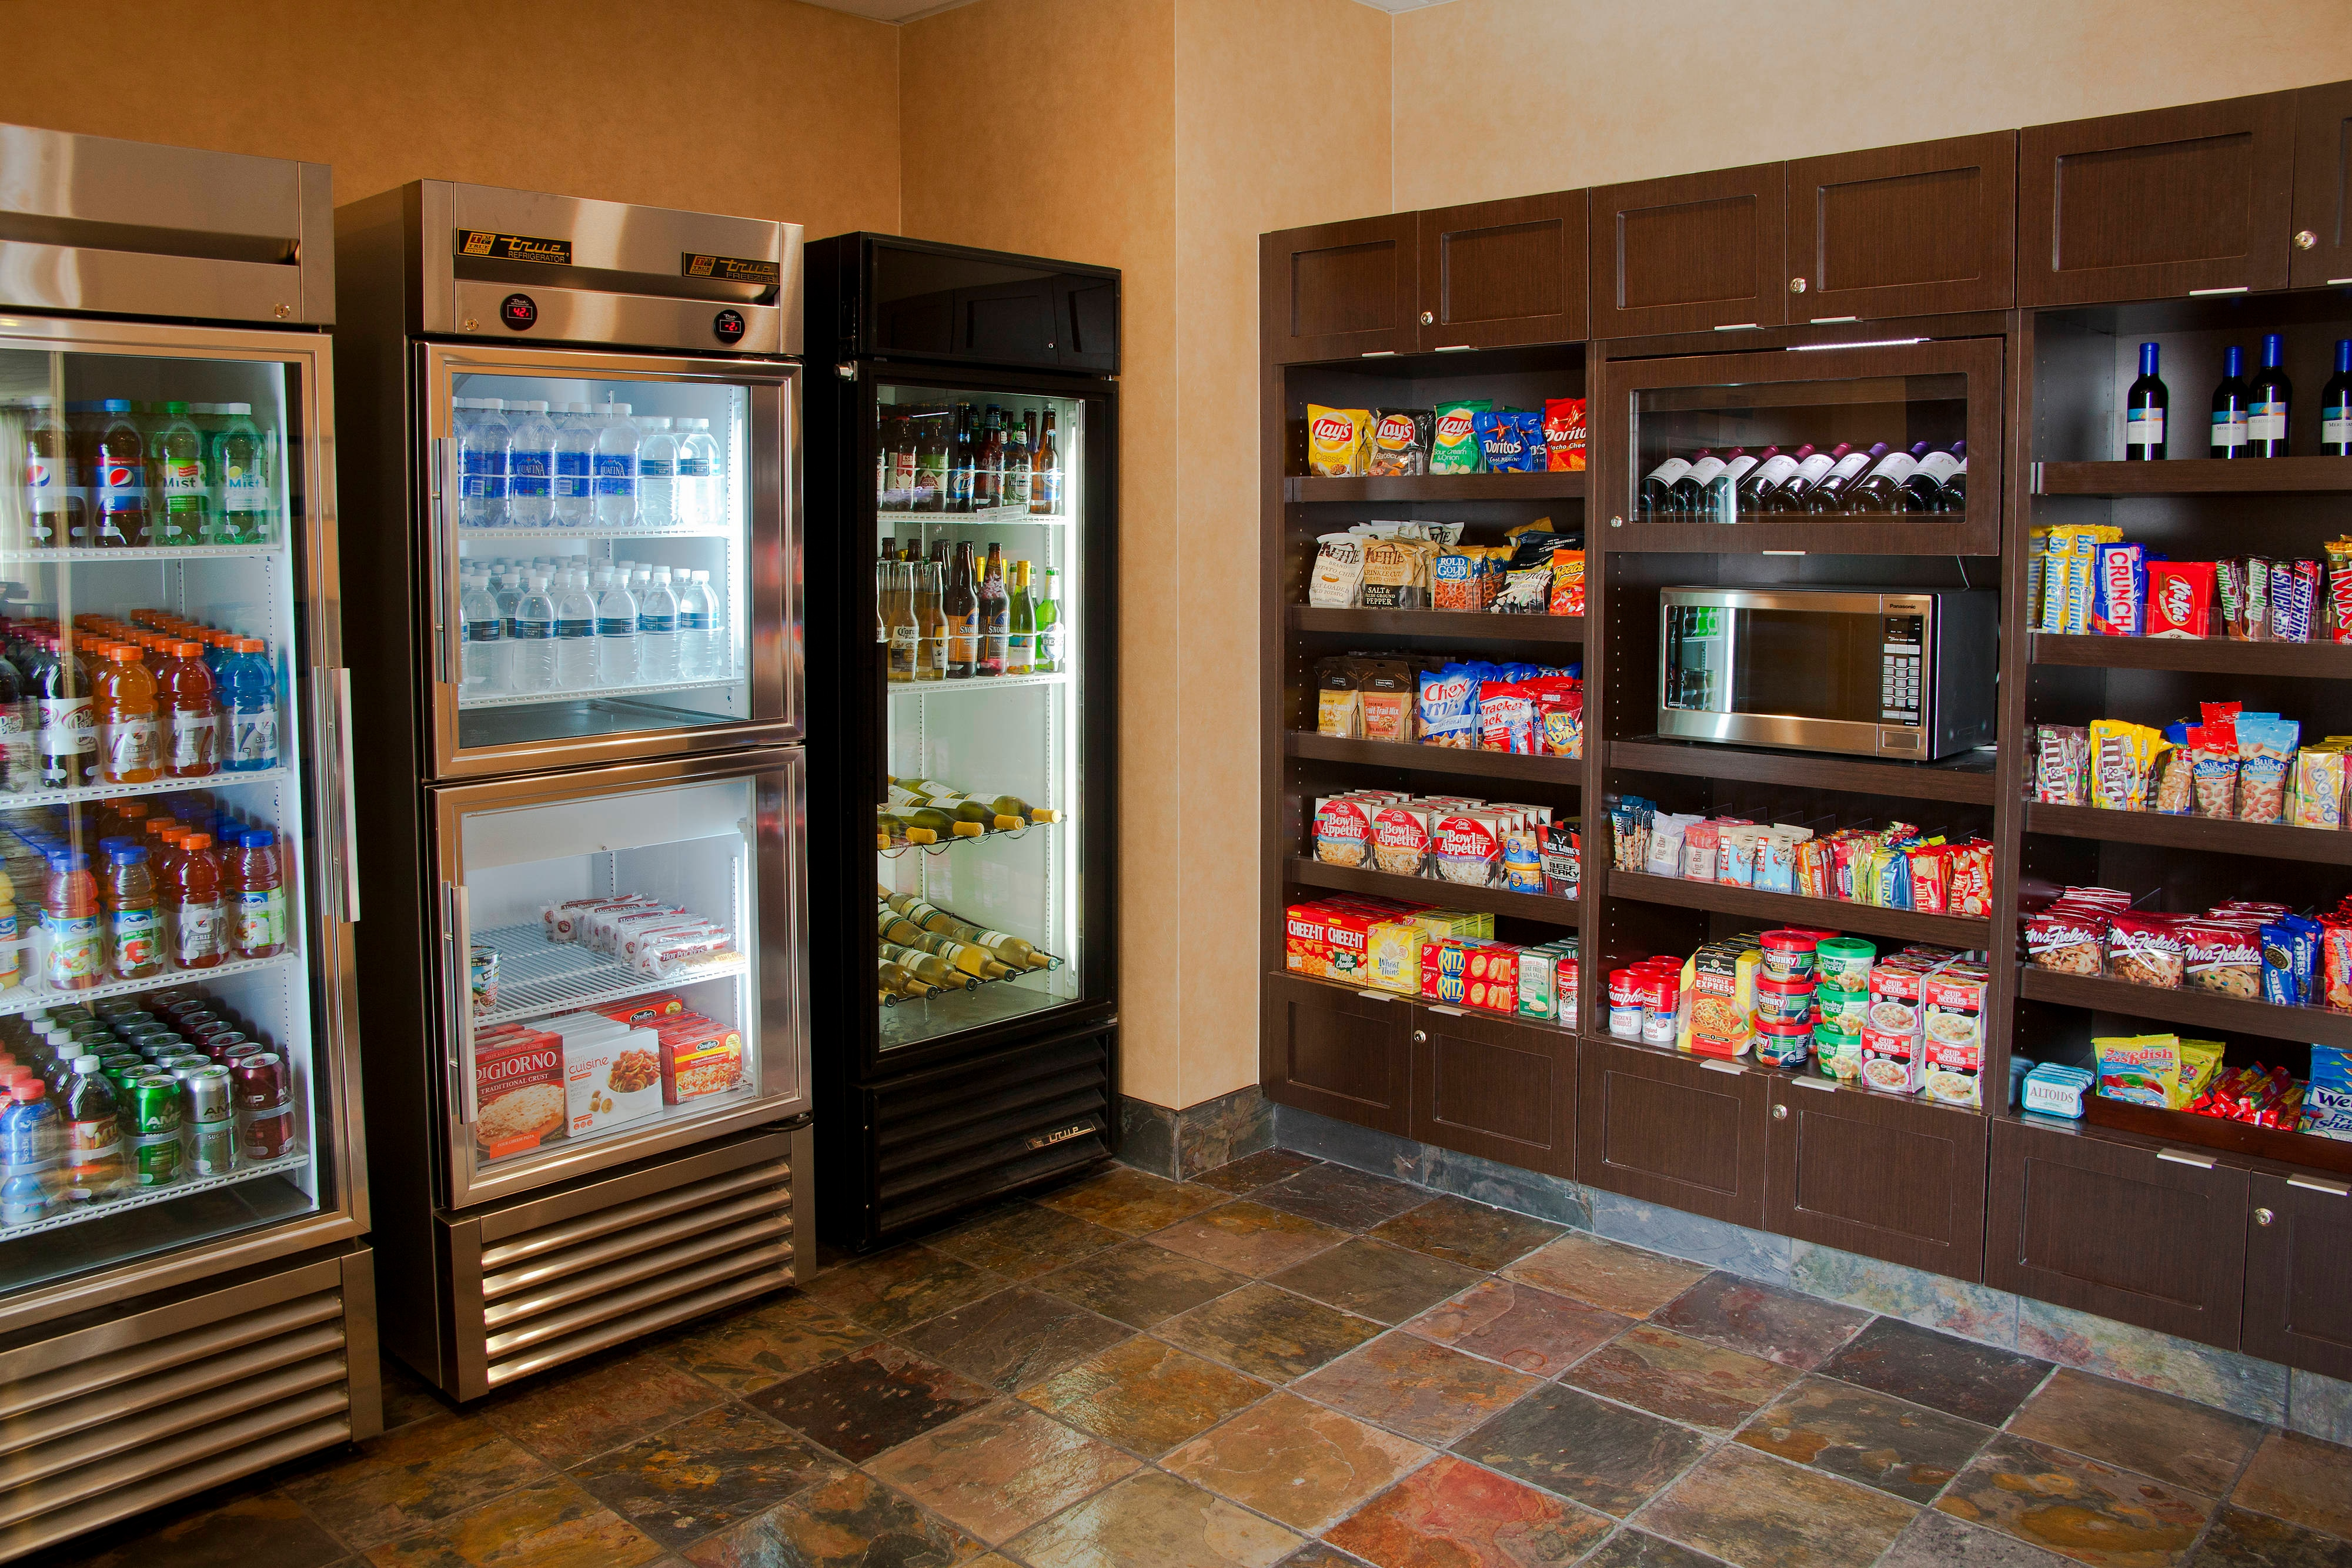 Residence Inn Redmond Washington Market